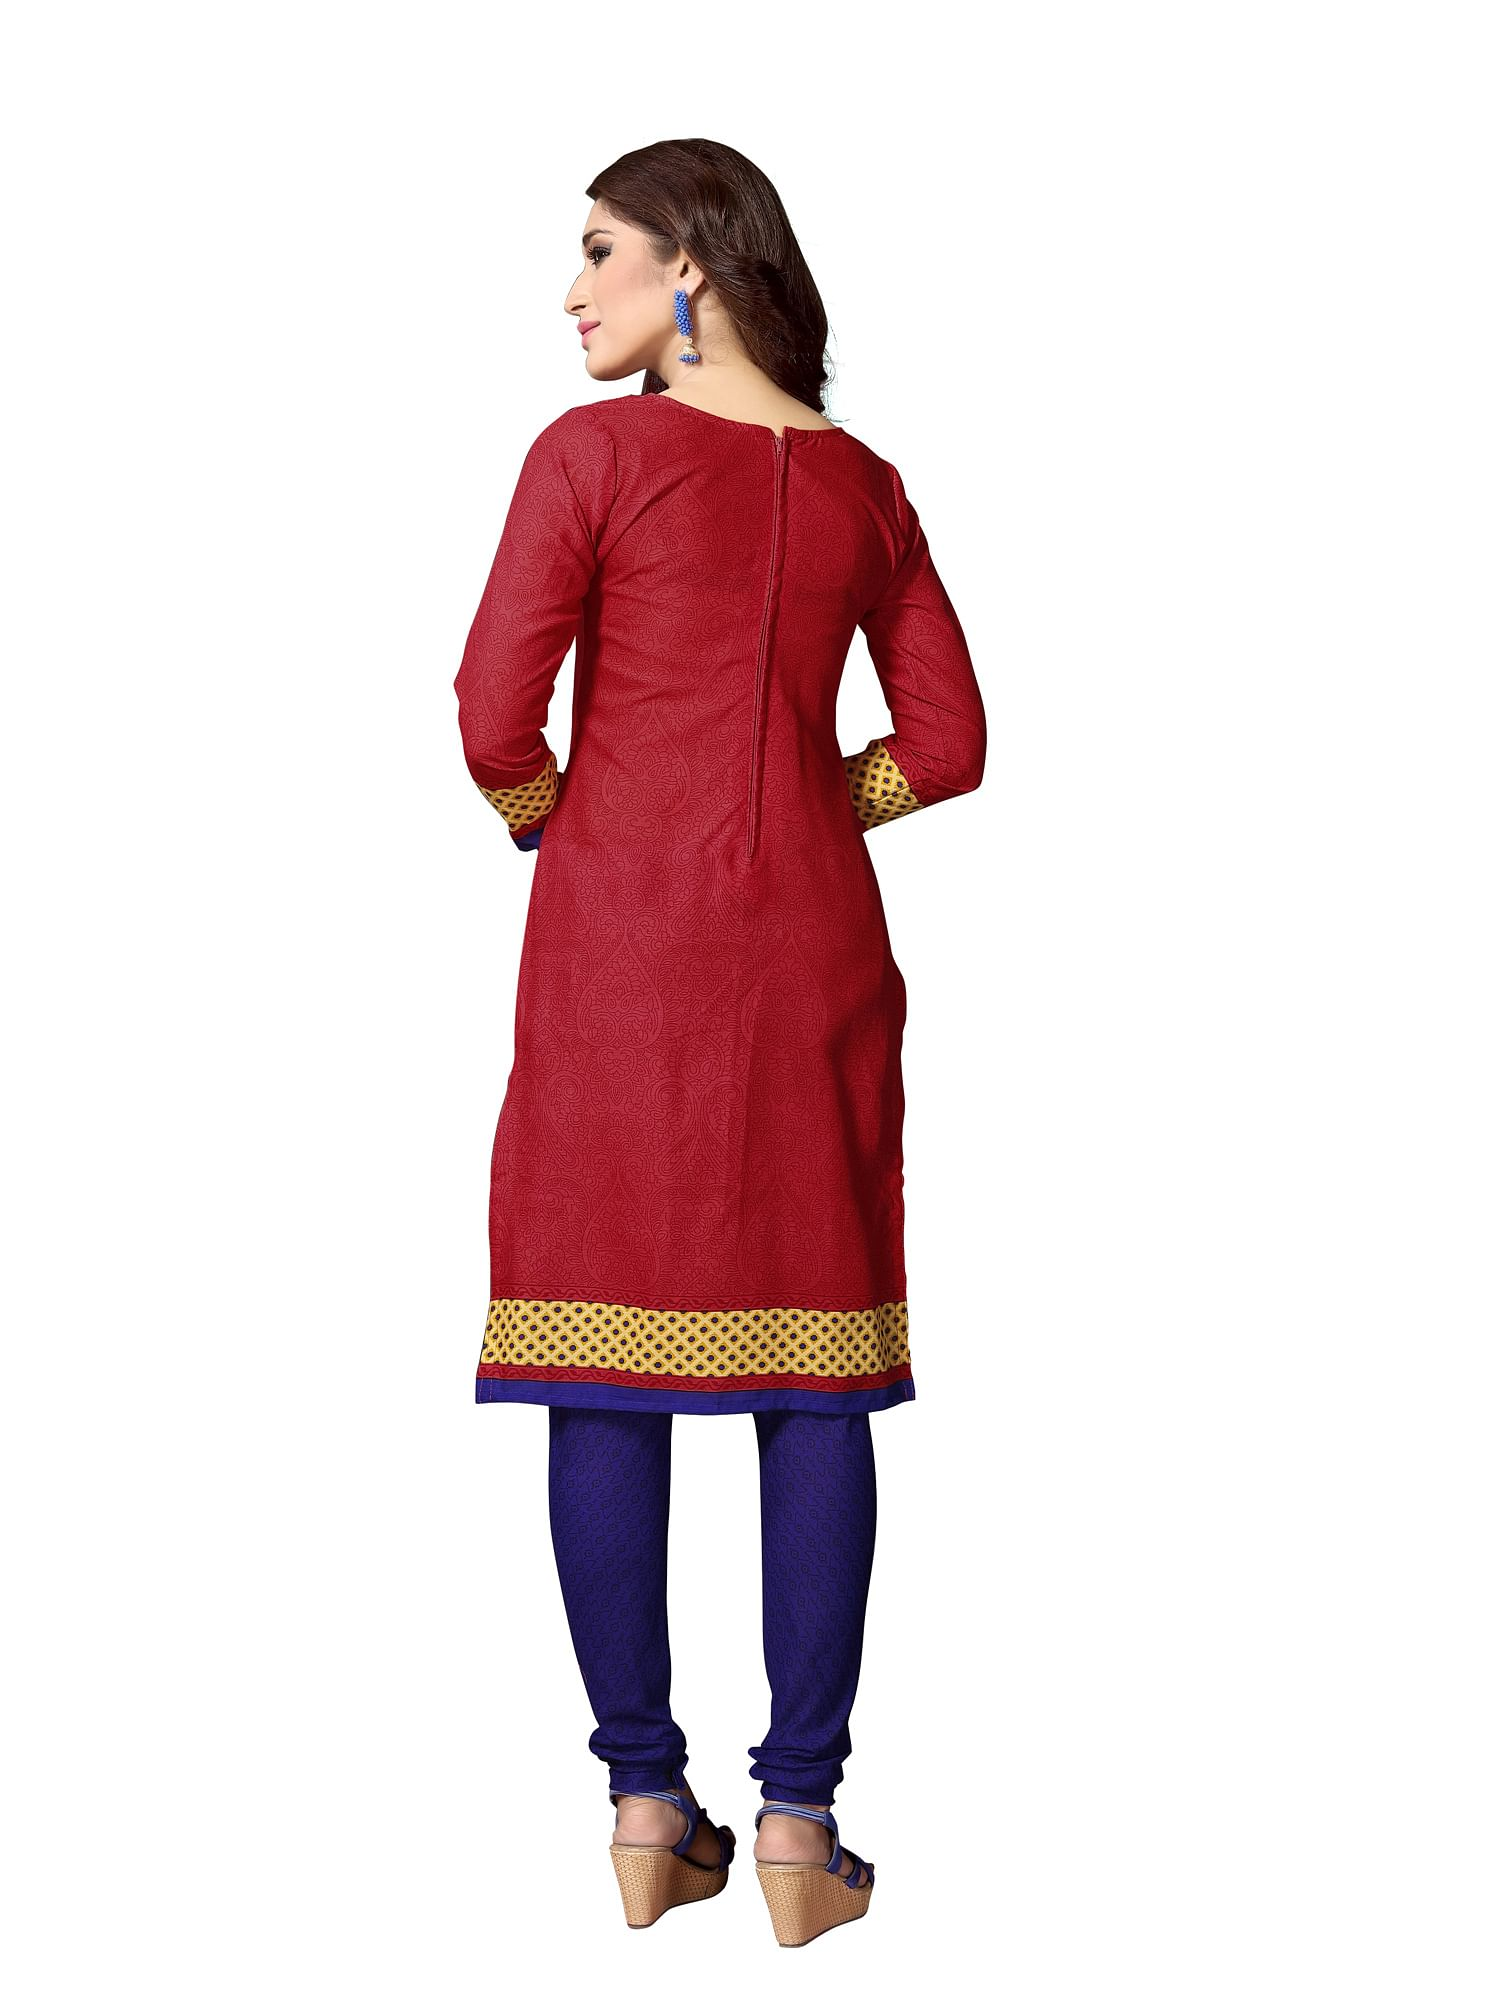 Stunning Red And Blue Colored Dual Top Printed Cotton Dress Material